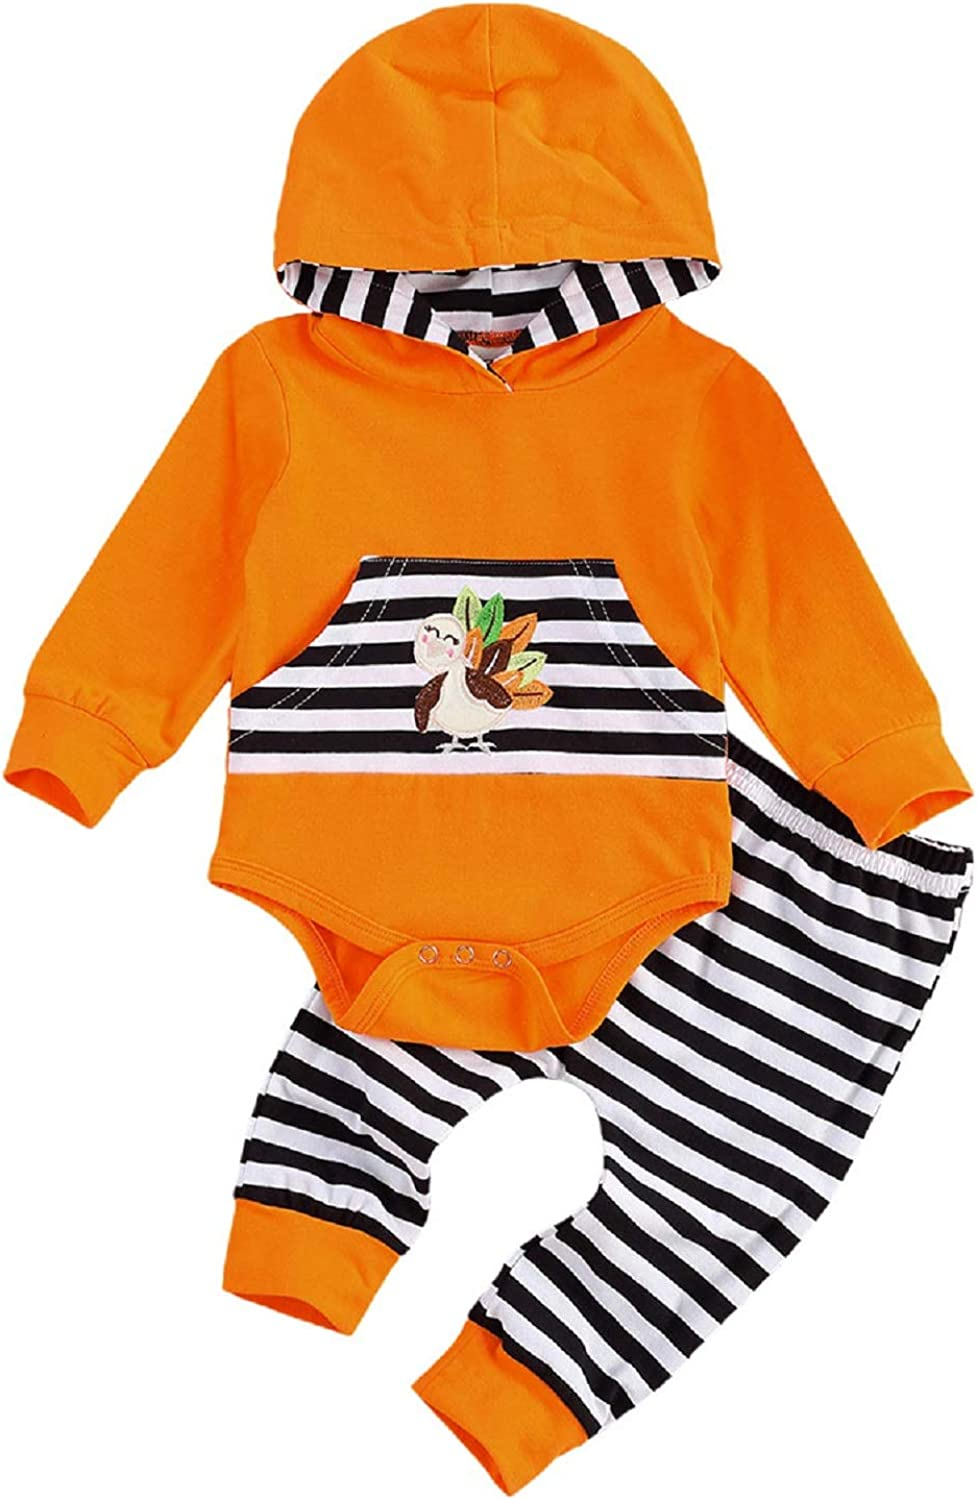 KMBANGI Newborn Baby Thanksgiving Outfits Turkey Hooded Romper Brown Sripe Pants Clothes